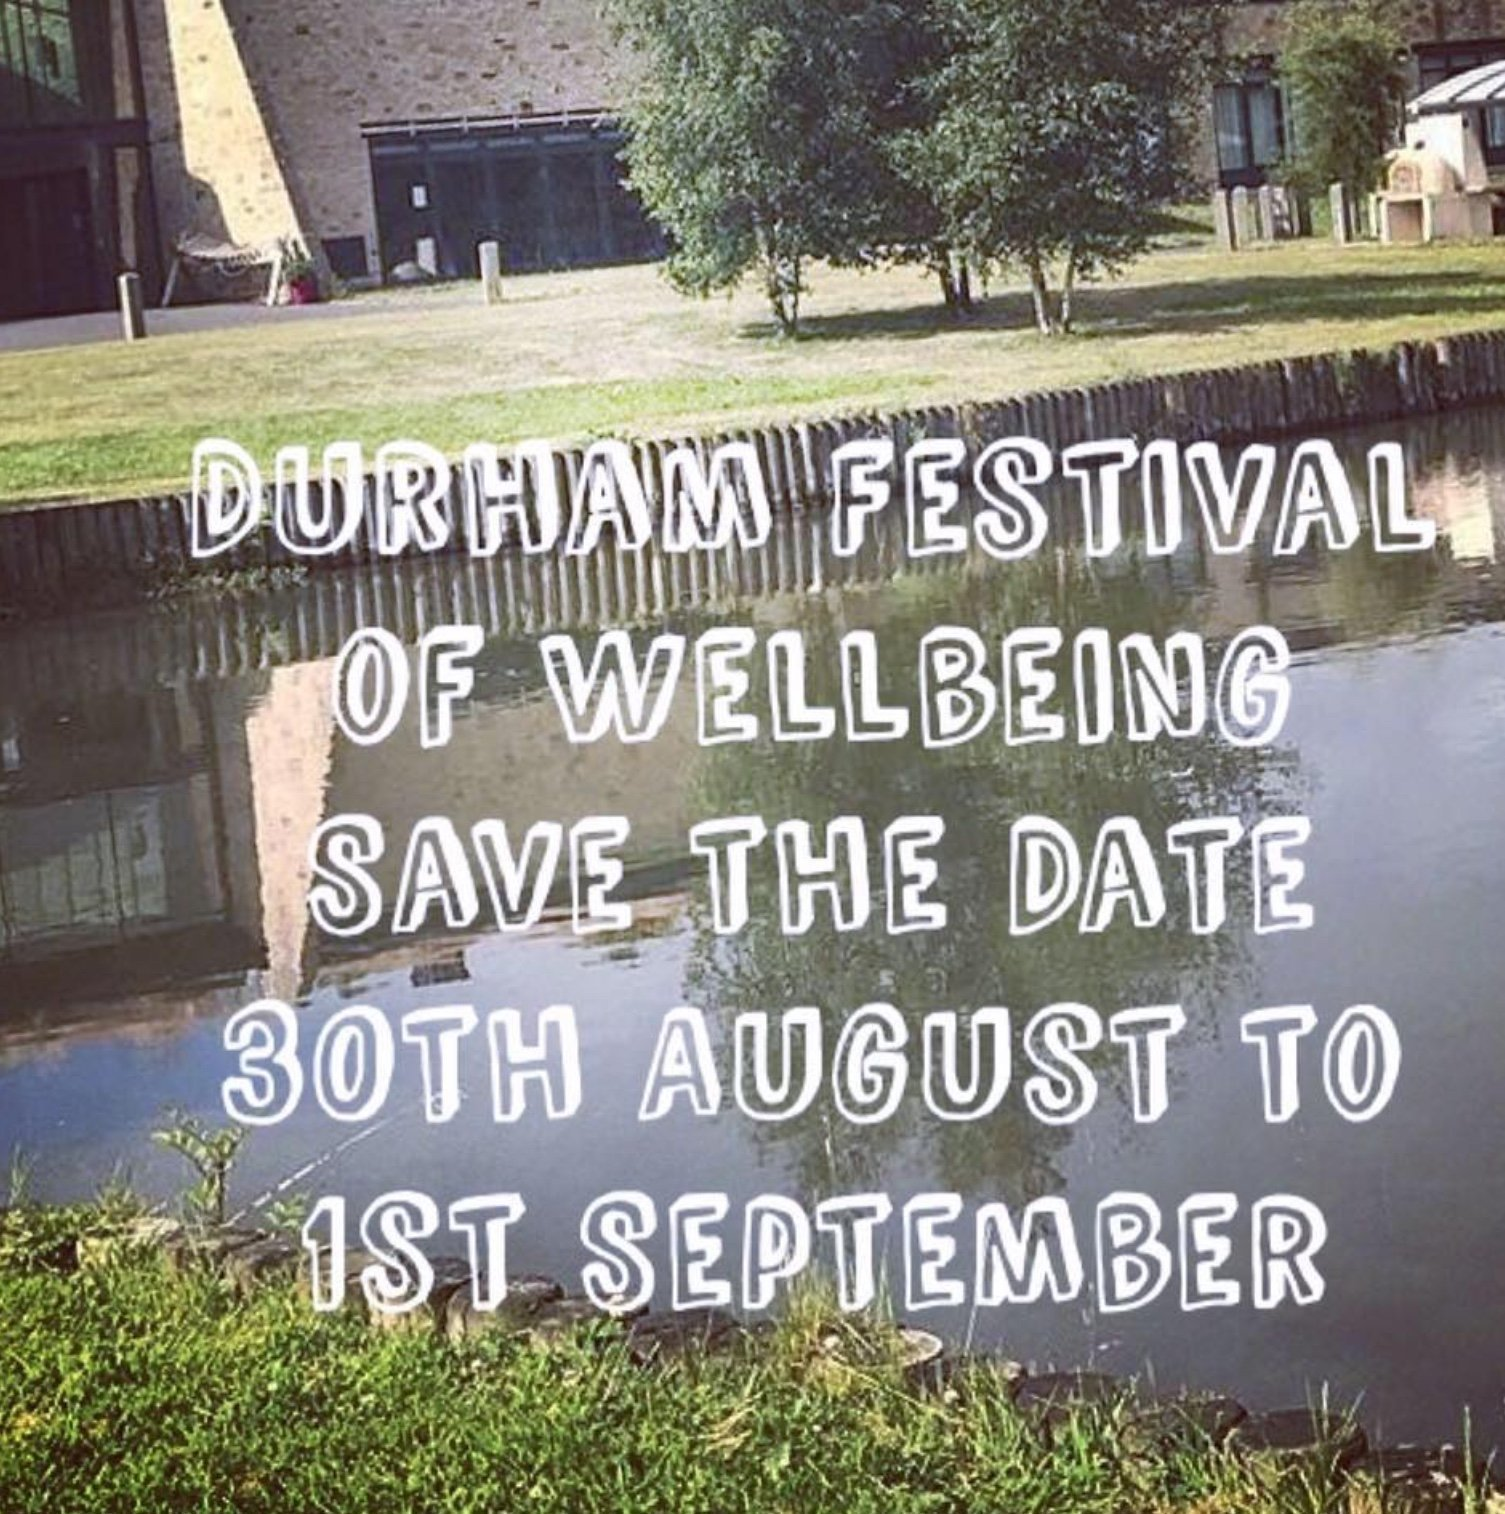 Durham Festival of Wellbeing